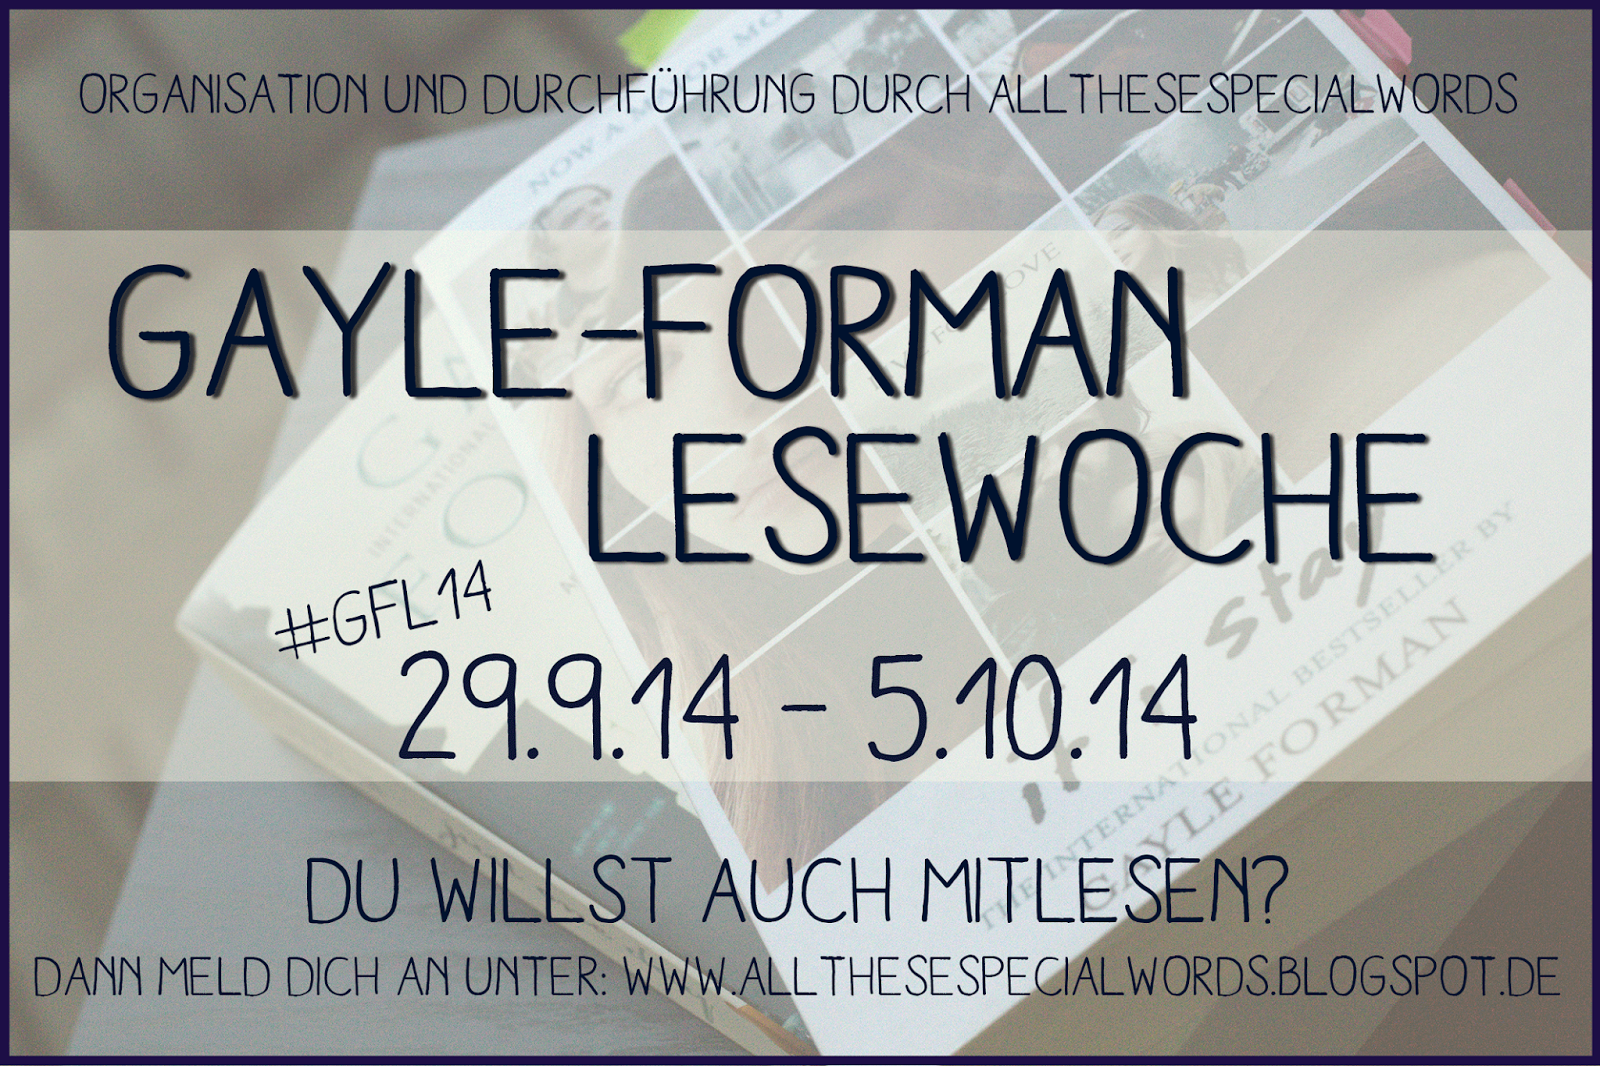 http://allthesespecialwords.blogspot.co.at/2014/09/lesewoche-ankundigung-zur-gayle-forman.html